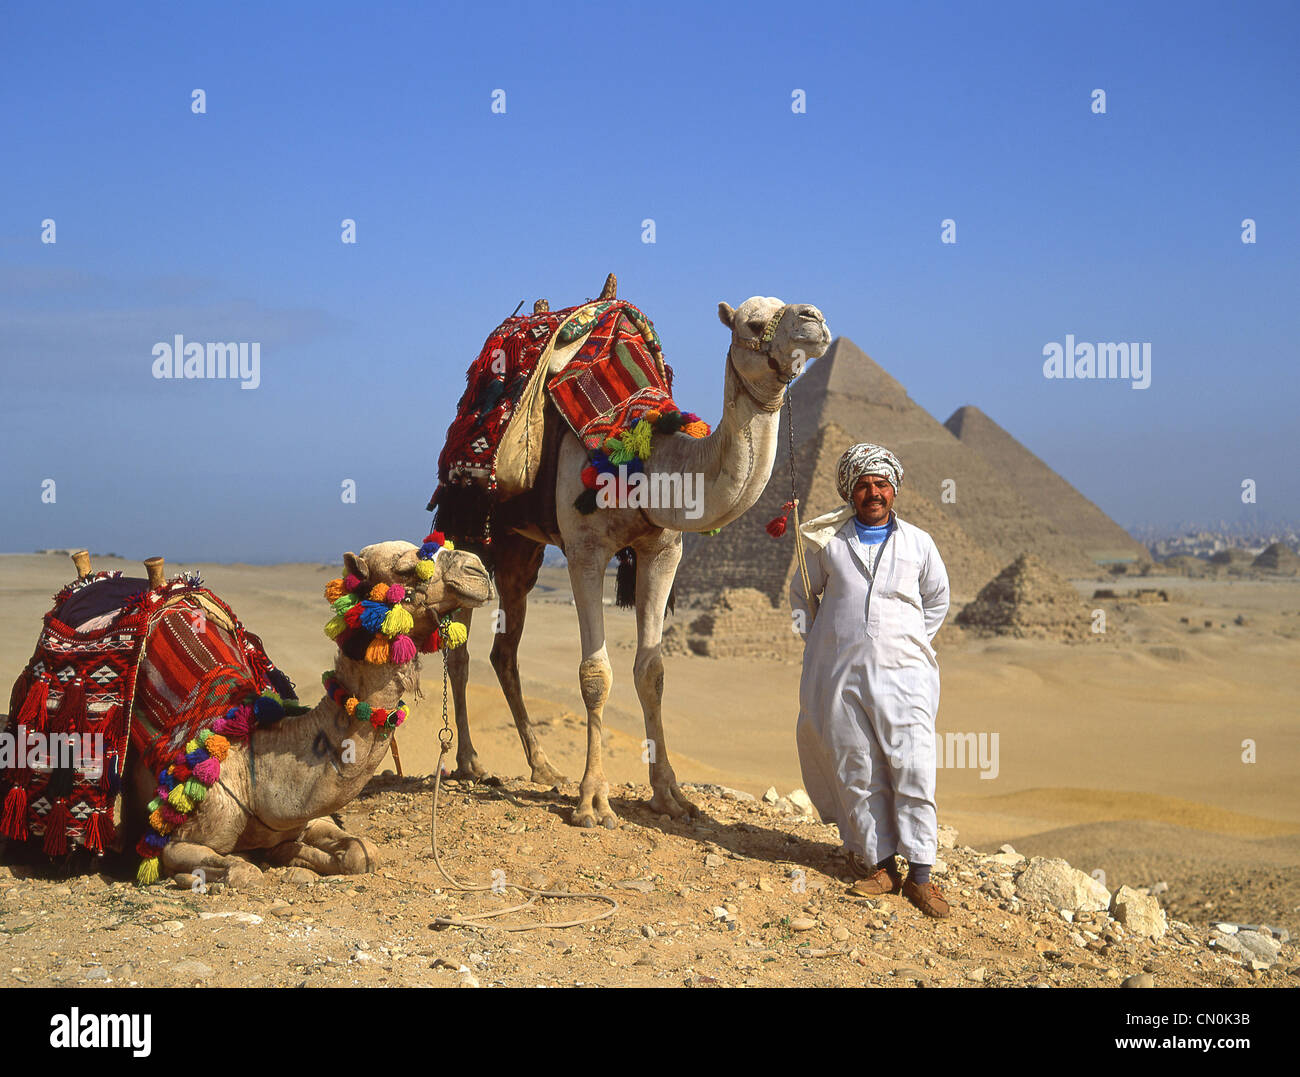 Camel driver with camels, The Great Pyramids of Giza, Giza Governate, Republic of Egypt - Stock Image